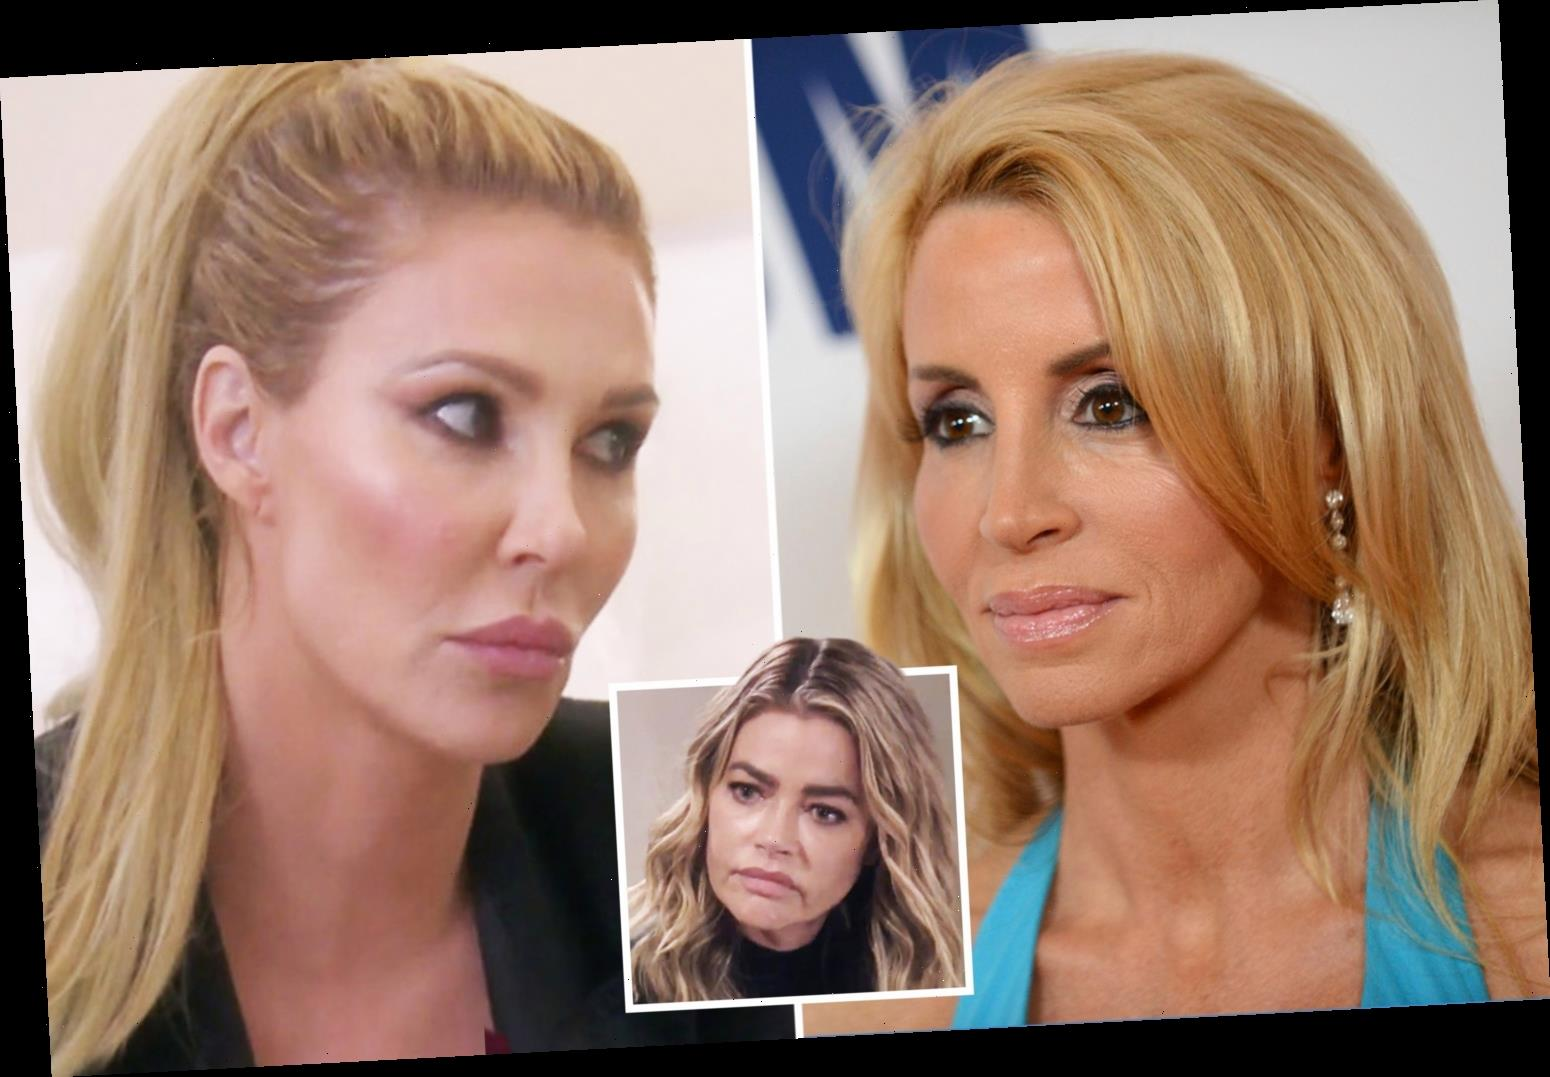 RHOBH's Camille Grammer claims Brandi Glanville 'rehearsed' claims she hooked up with Denise Richards in 'fake' scene – The Sun